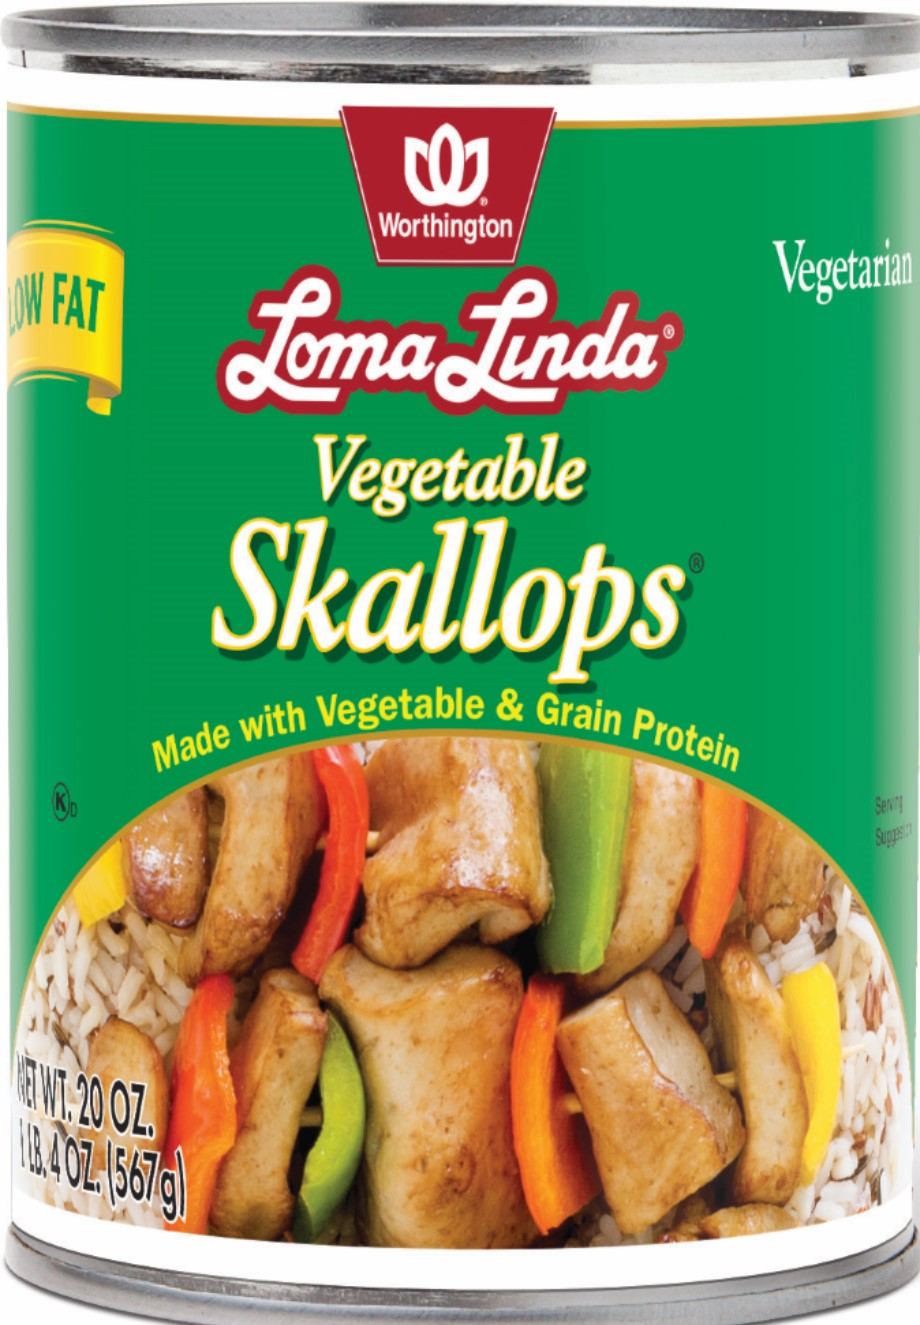 VEGETABLE SKALLOPS LOW FAT,WORTHINGTON LF,4556100063